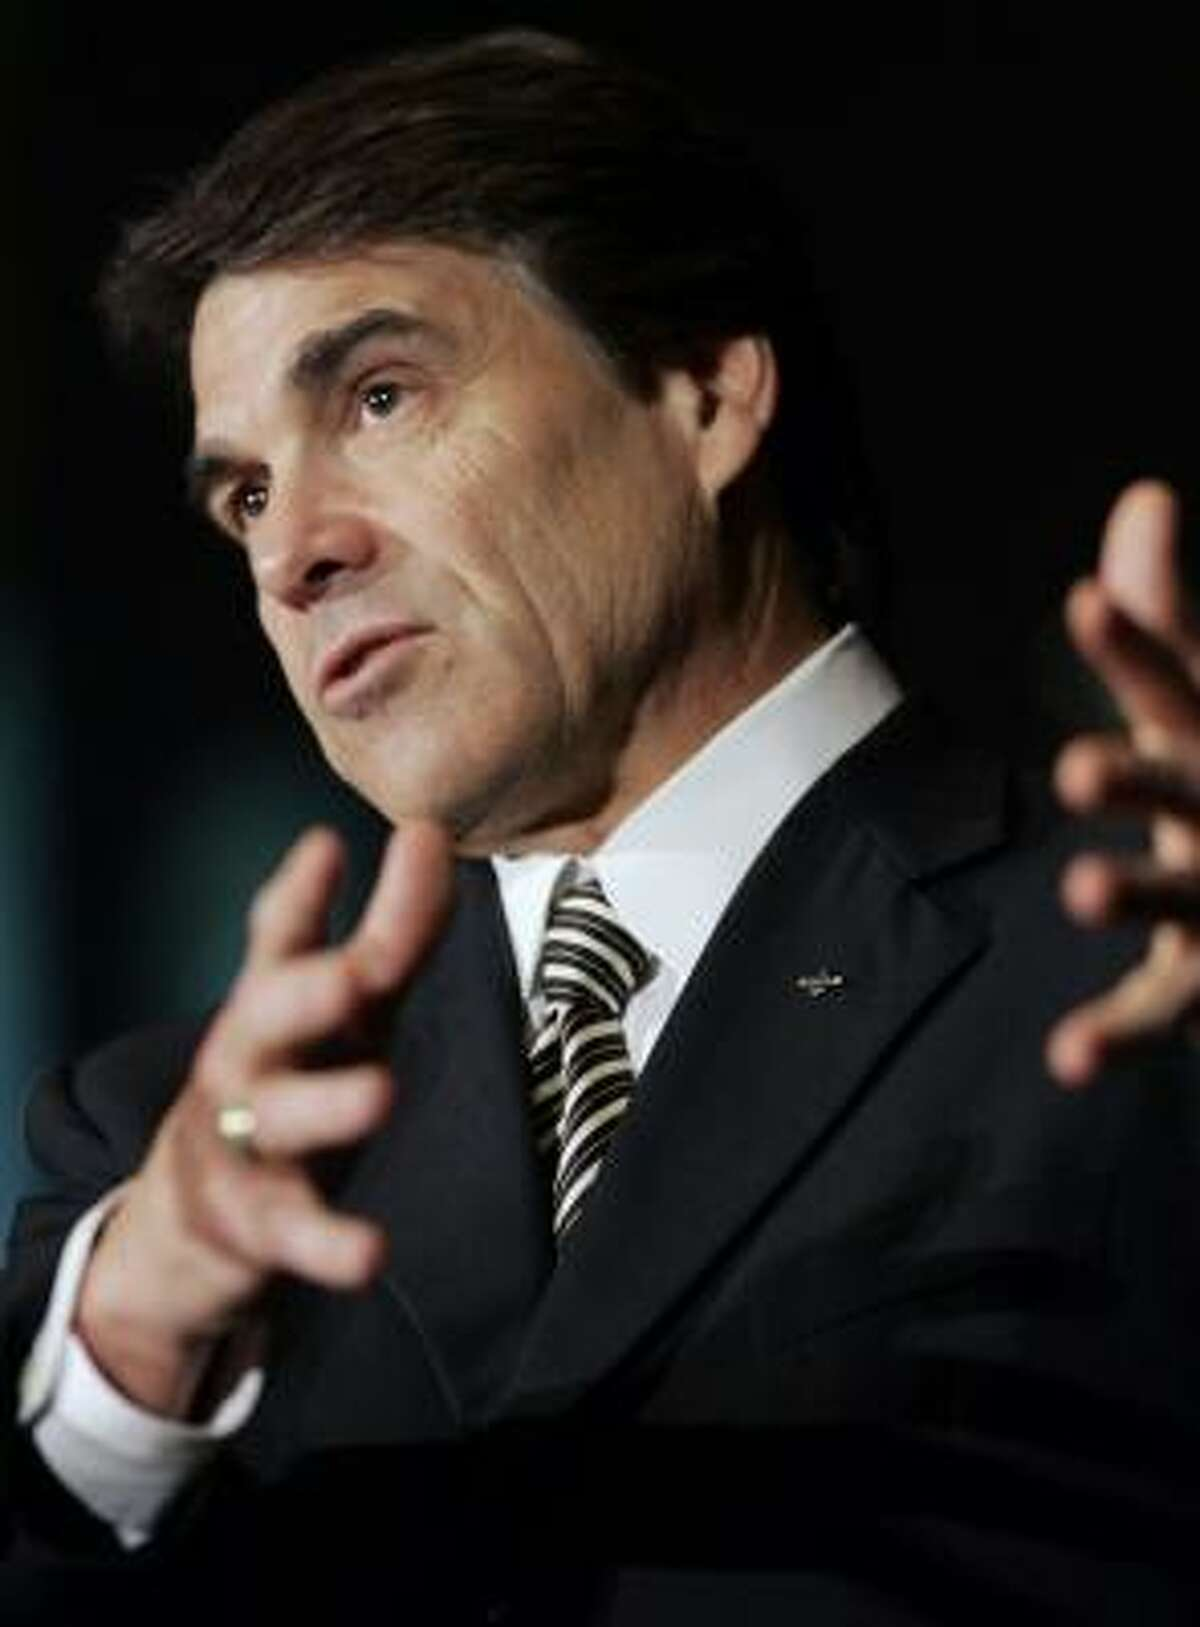 Next month, Gov. Rick Perry will be sworn in for his second full term of office, serving until January 2011.